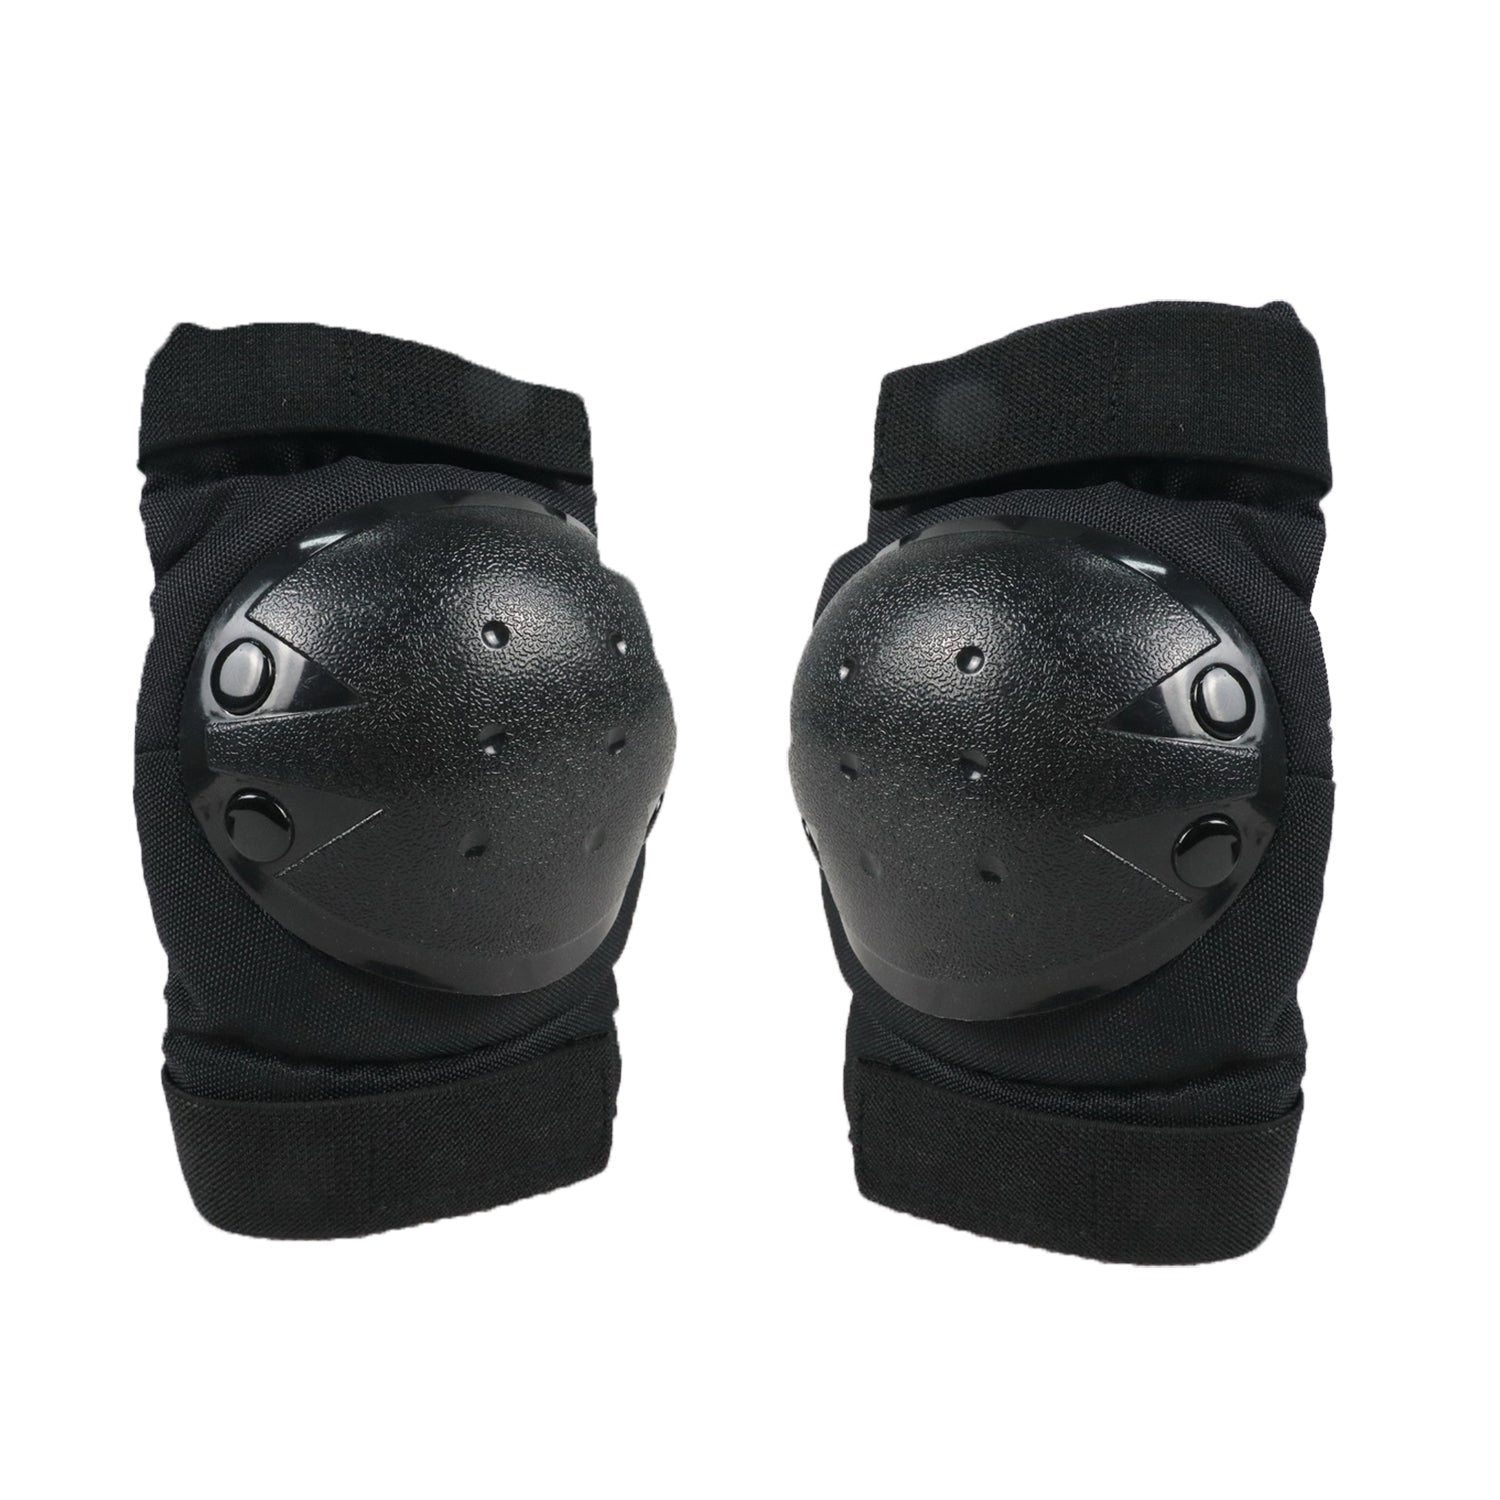 Black kids knee pads